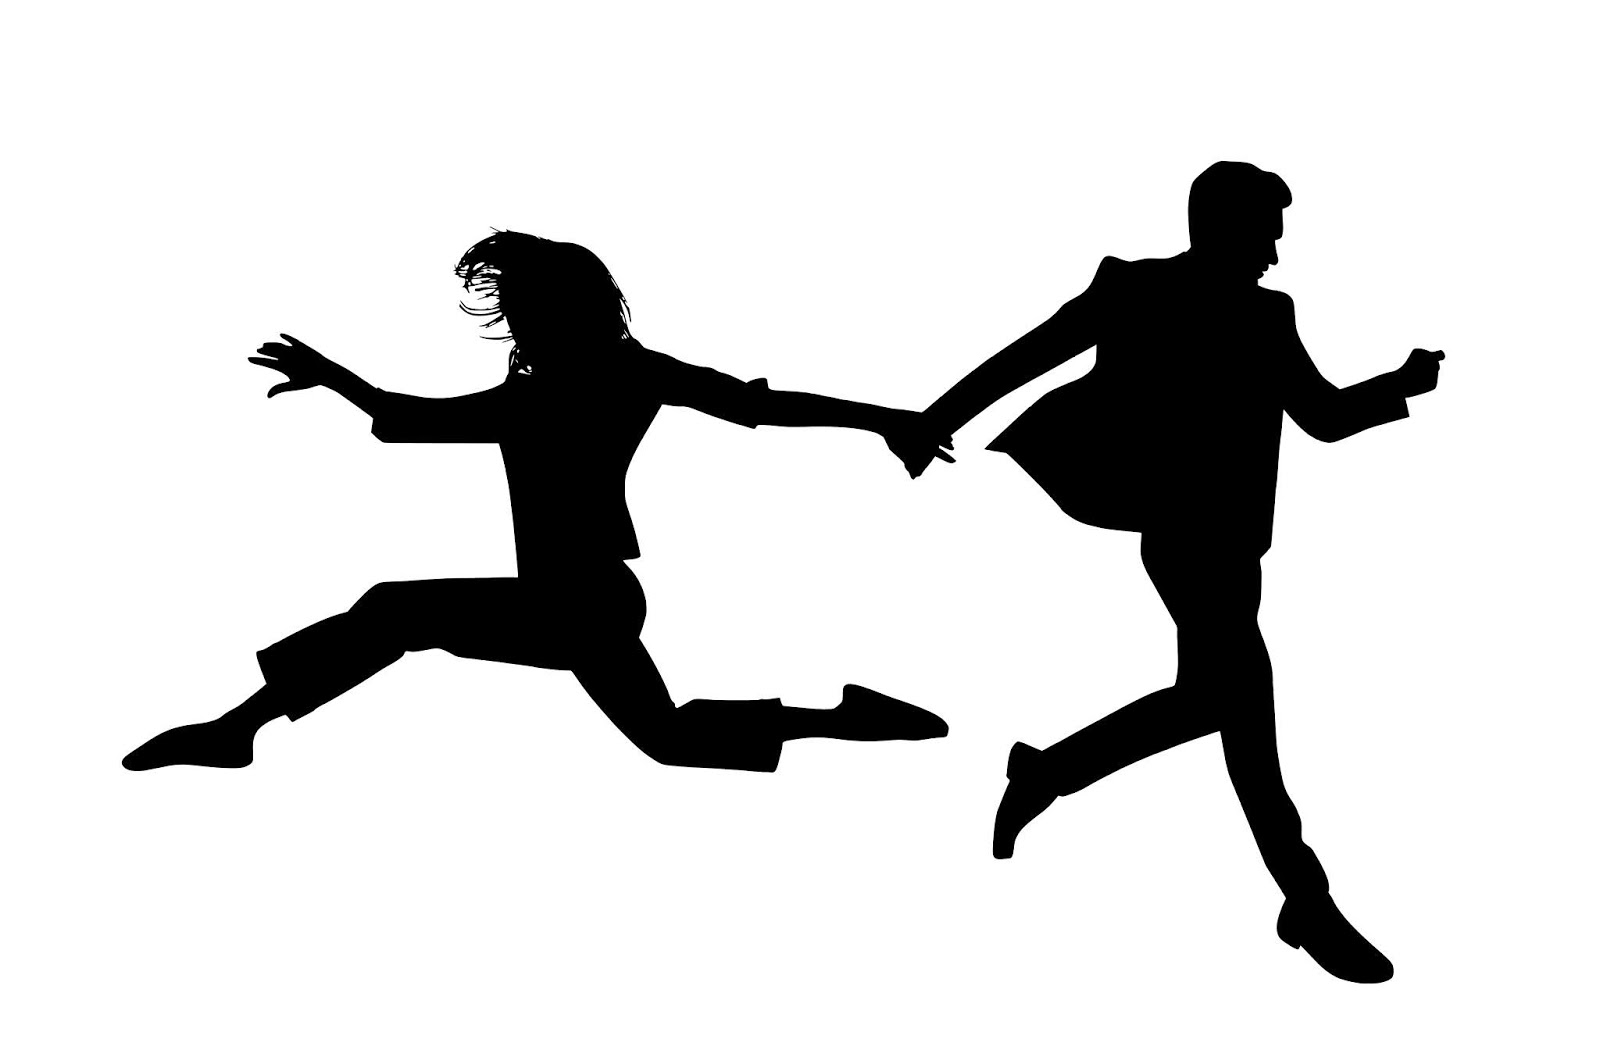 Illustration of relationship conflict silhouette